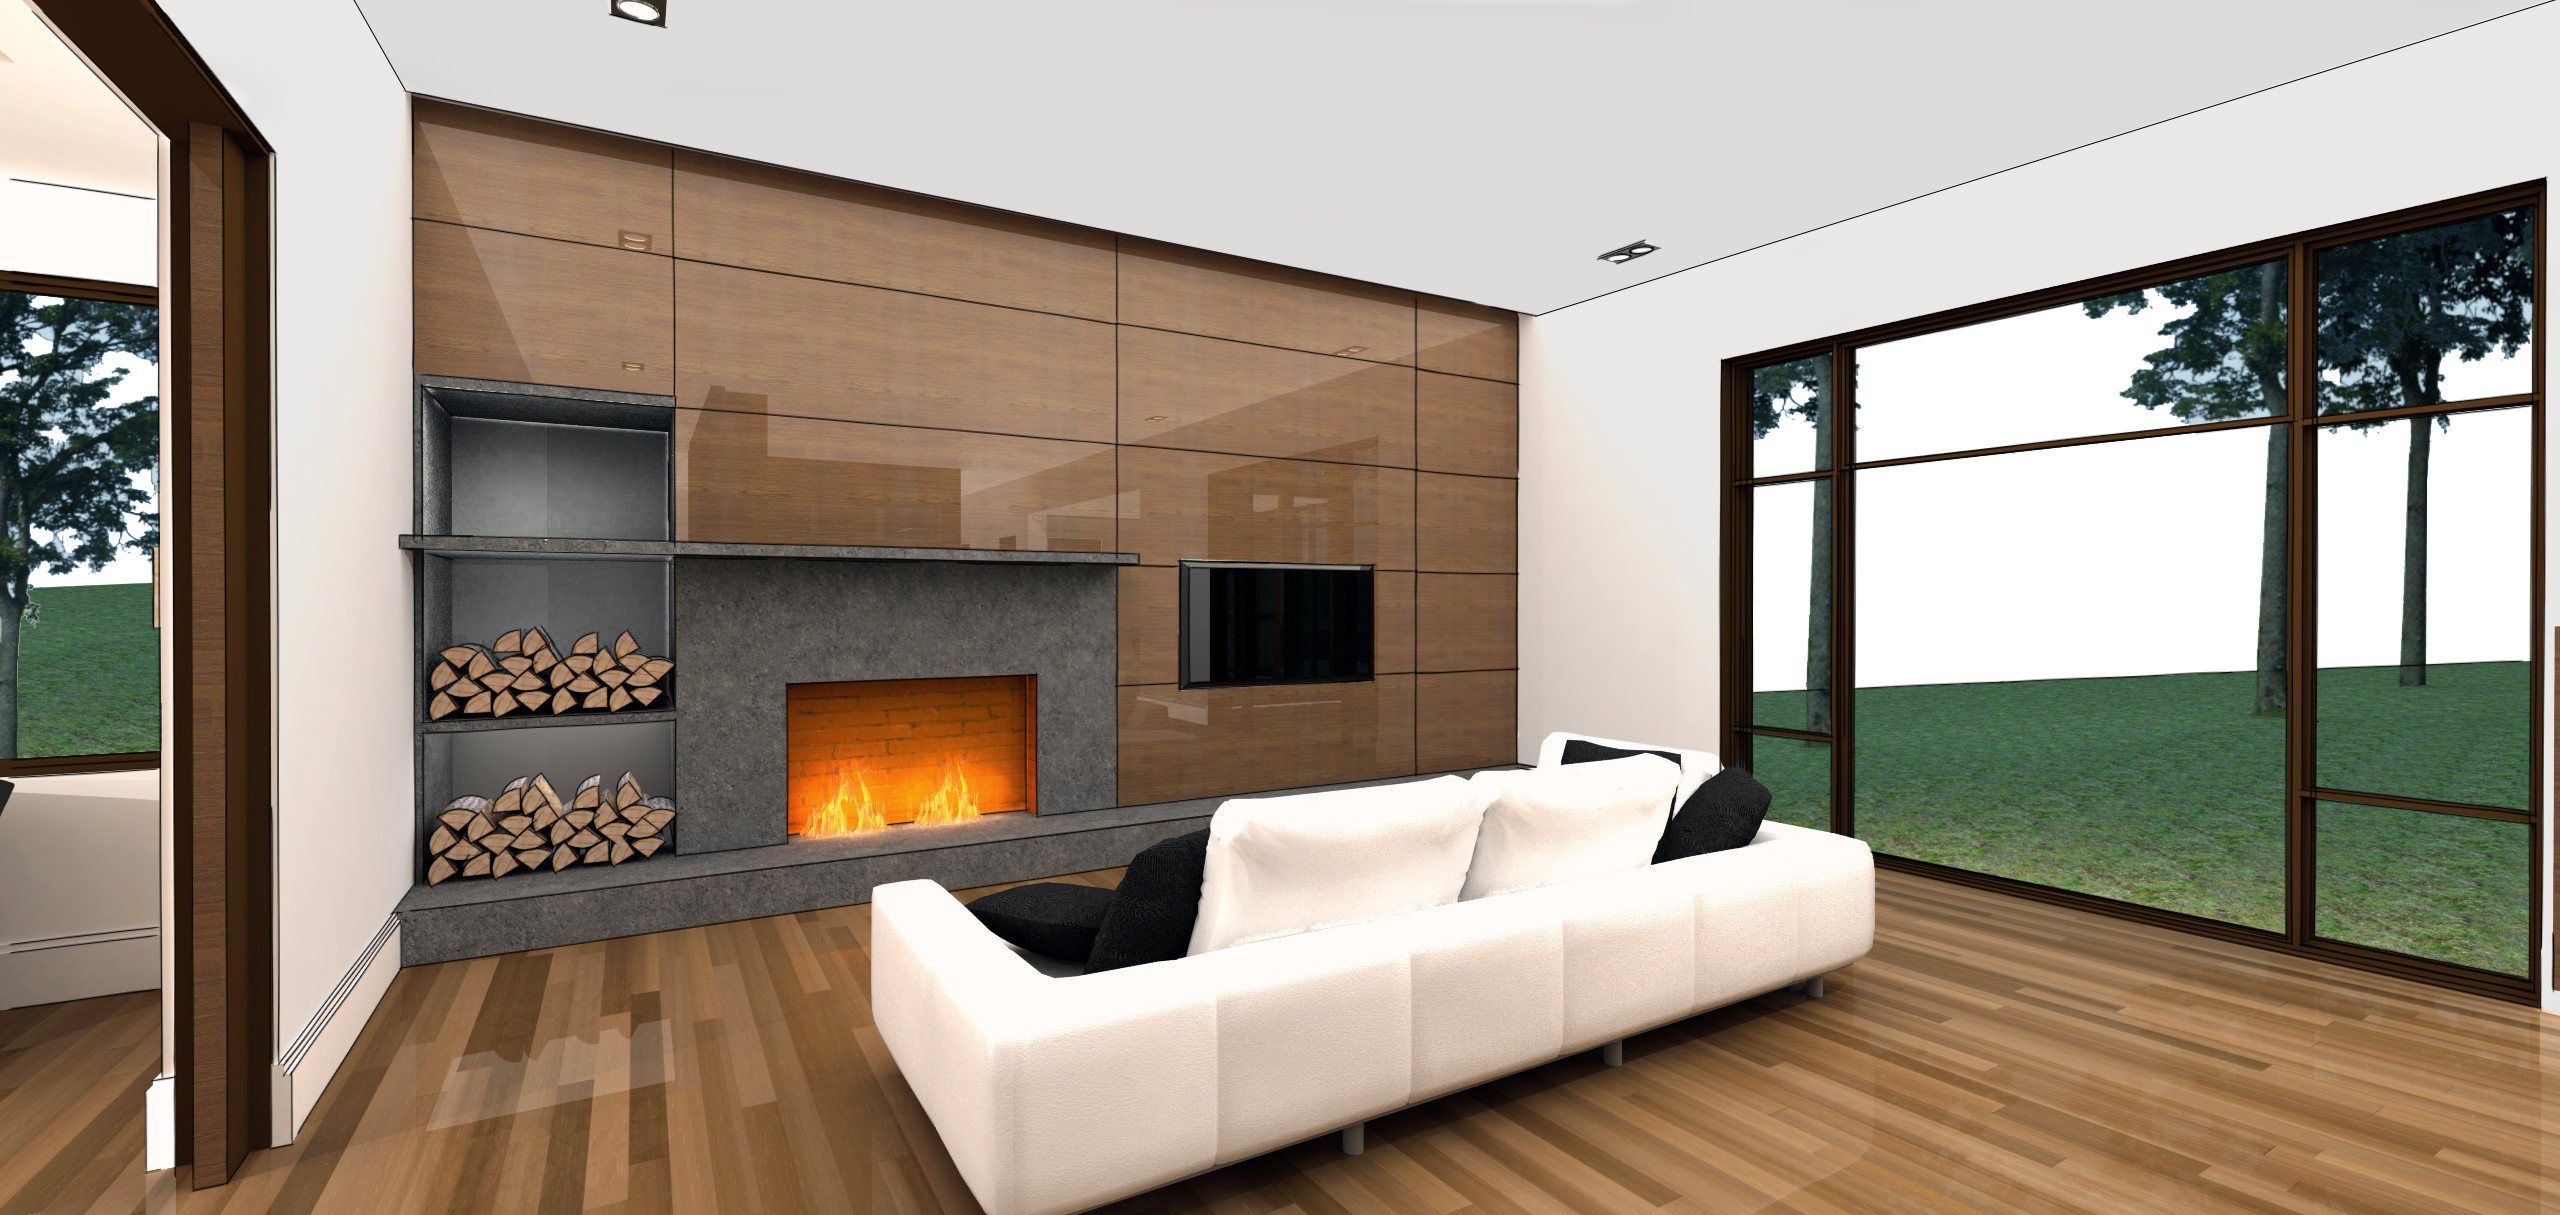 modern residential architecture. One of two fireplaces in the house anchor the long axis of the main living spaces.